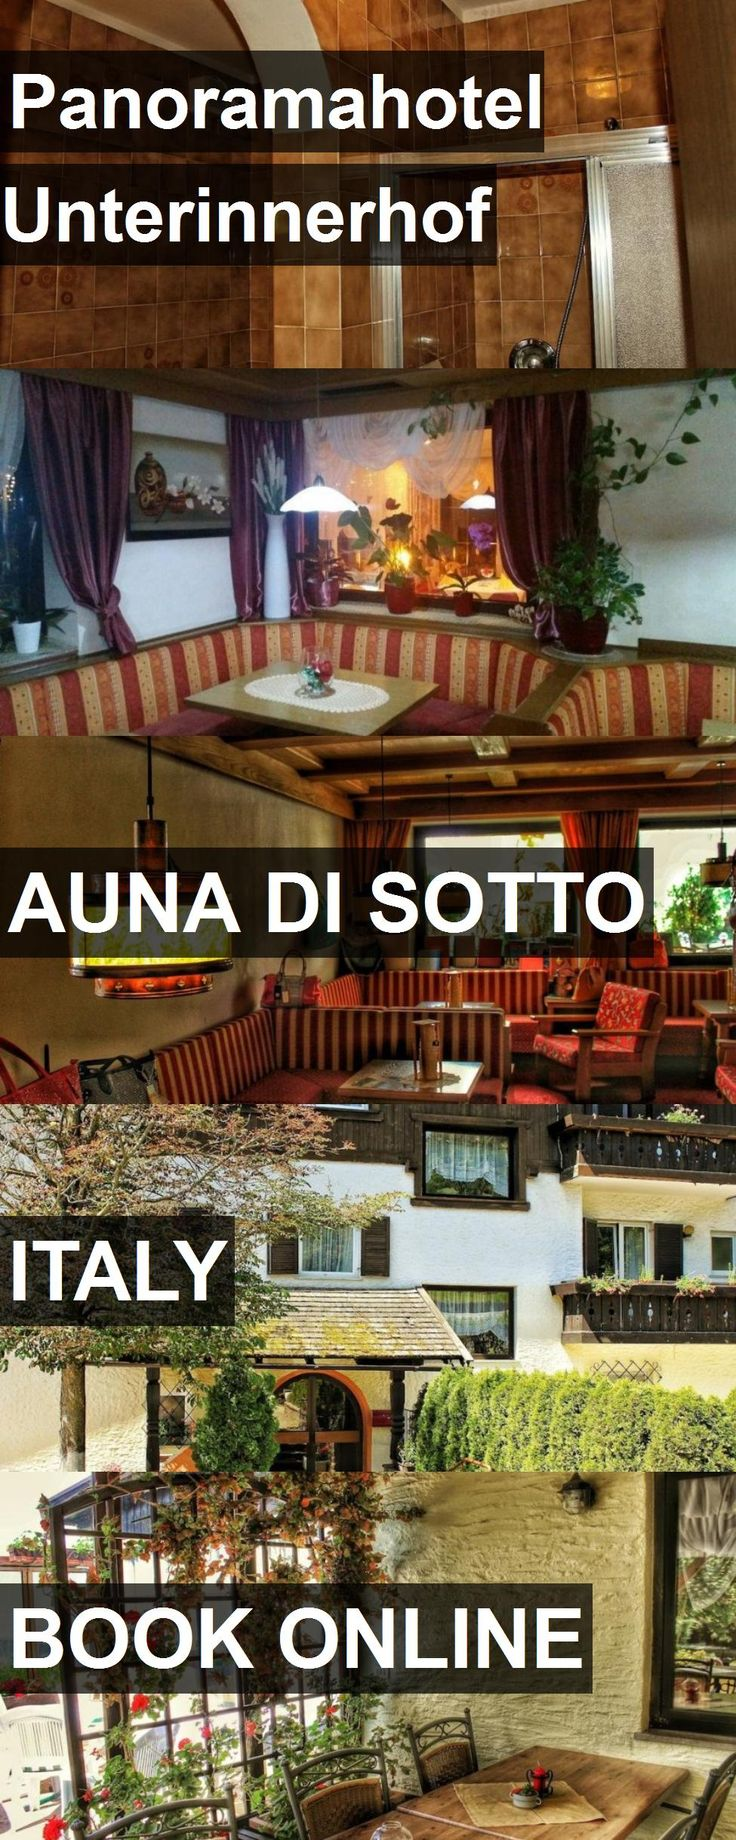 Panoramahotel Unterinnerhof in Auna di Sotto, Italy. For more information, photos, reviews and best prices please follow the link. #Italy #AunadiSotto #travel #vacation #hotel